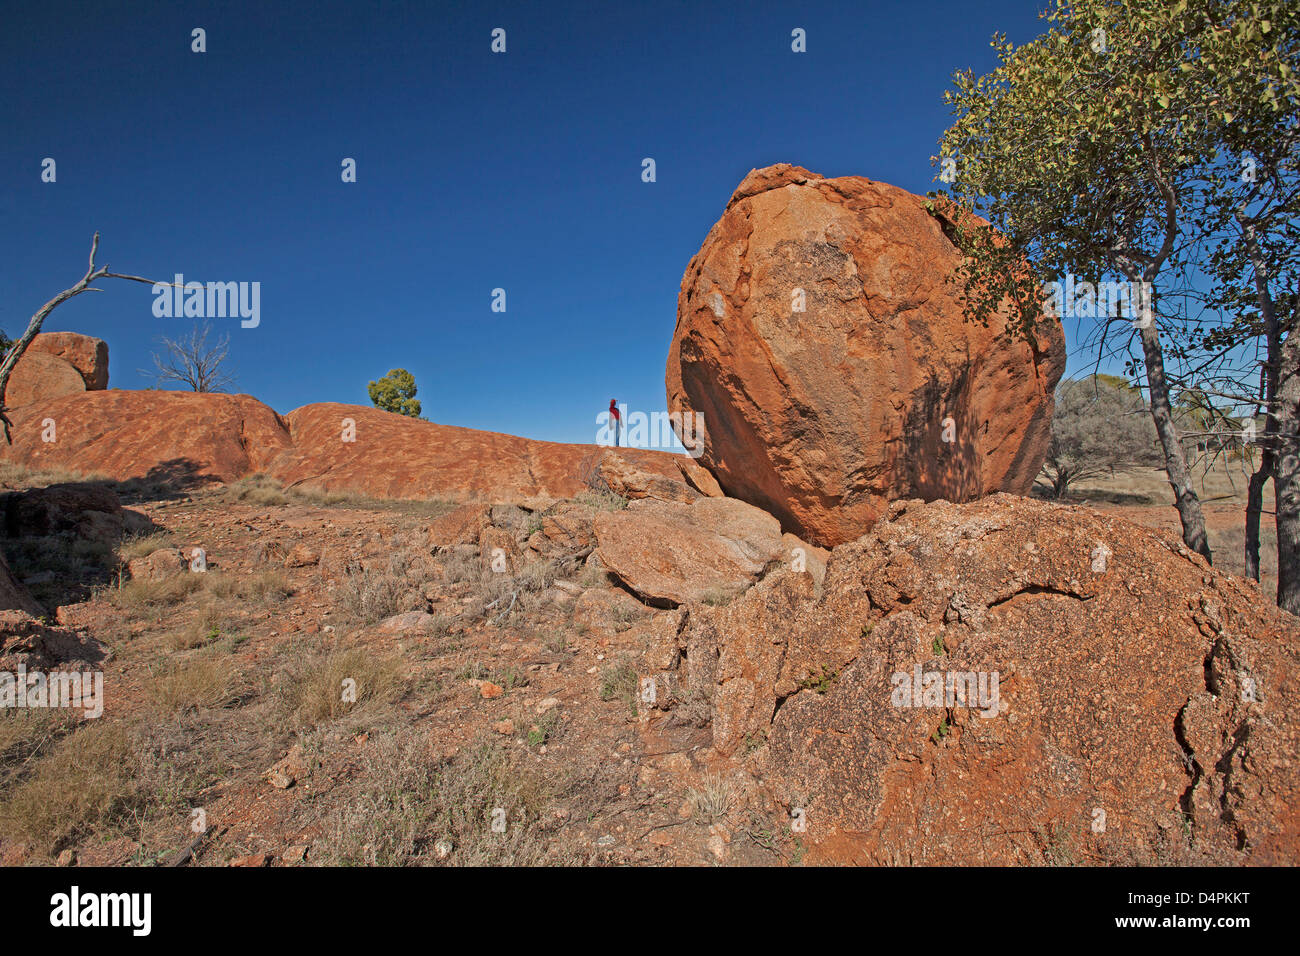 Gigantic granite boulder and slabs of rock - with man a tiny figure beside it - at Currawinya National Park, outback - Stock Image